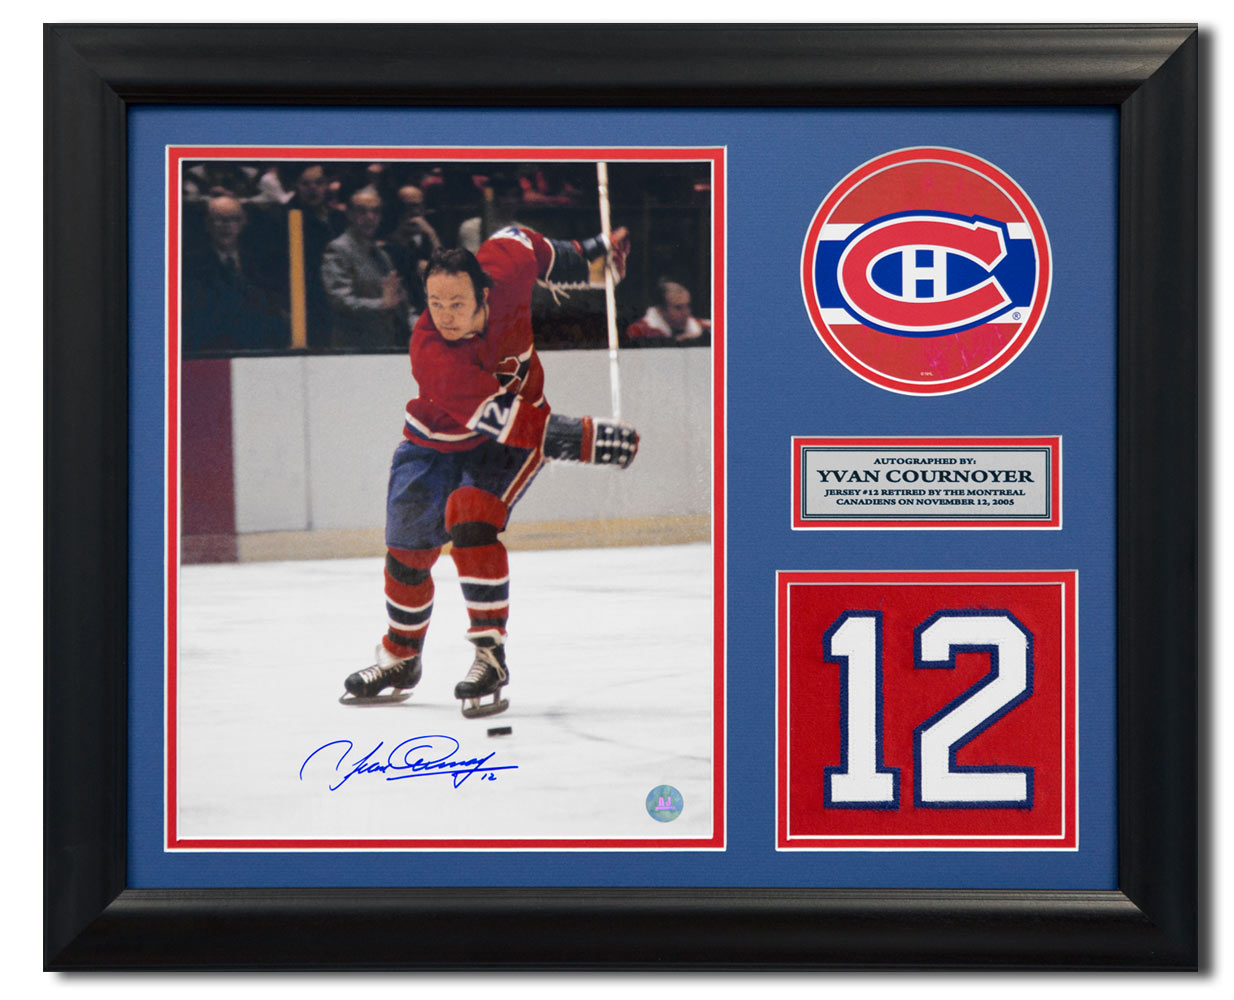 online store 1257b f599b Yvan Cournoyer Montreal Canadiens Signed Retired Jersey Number 23x19 Frame